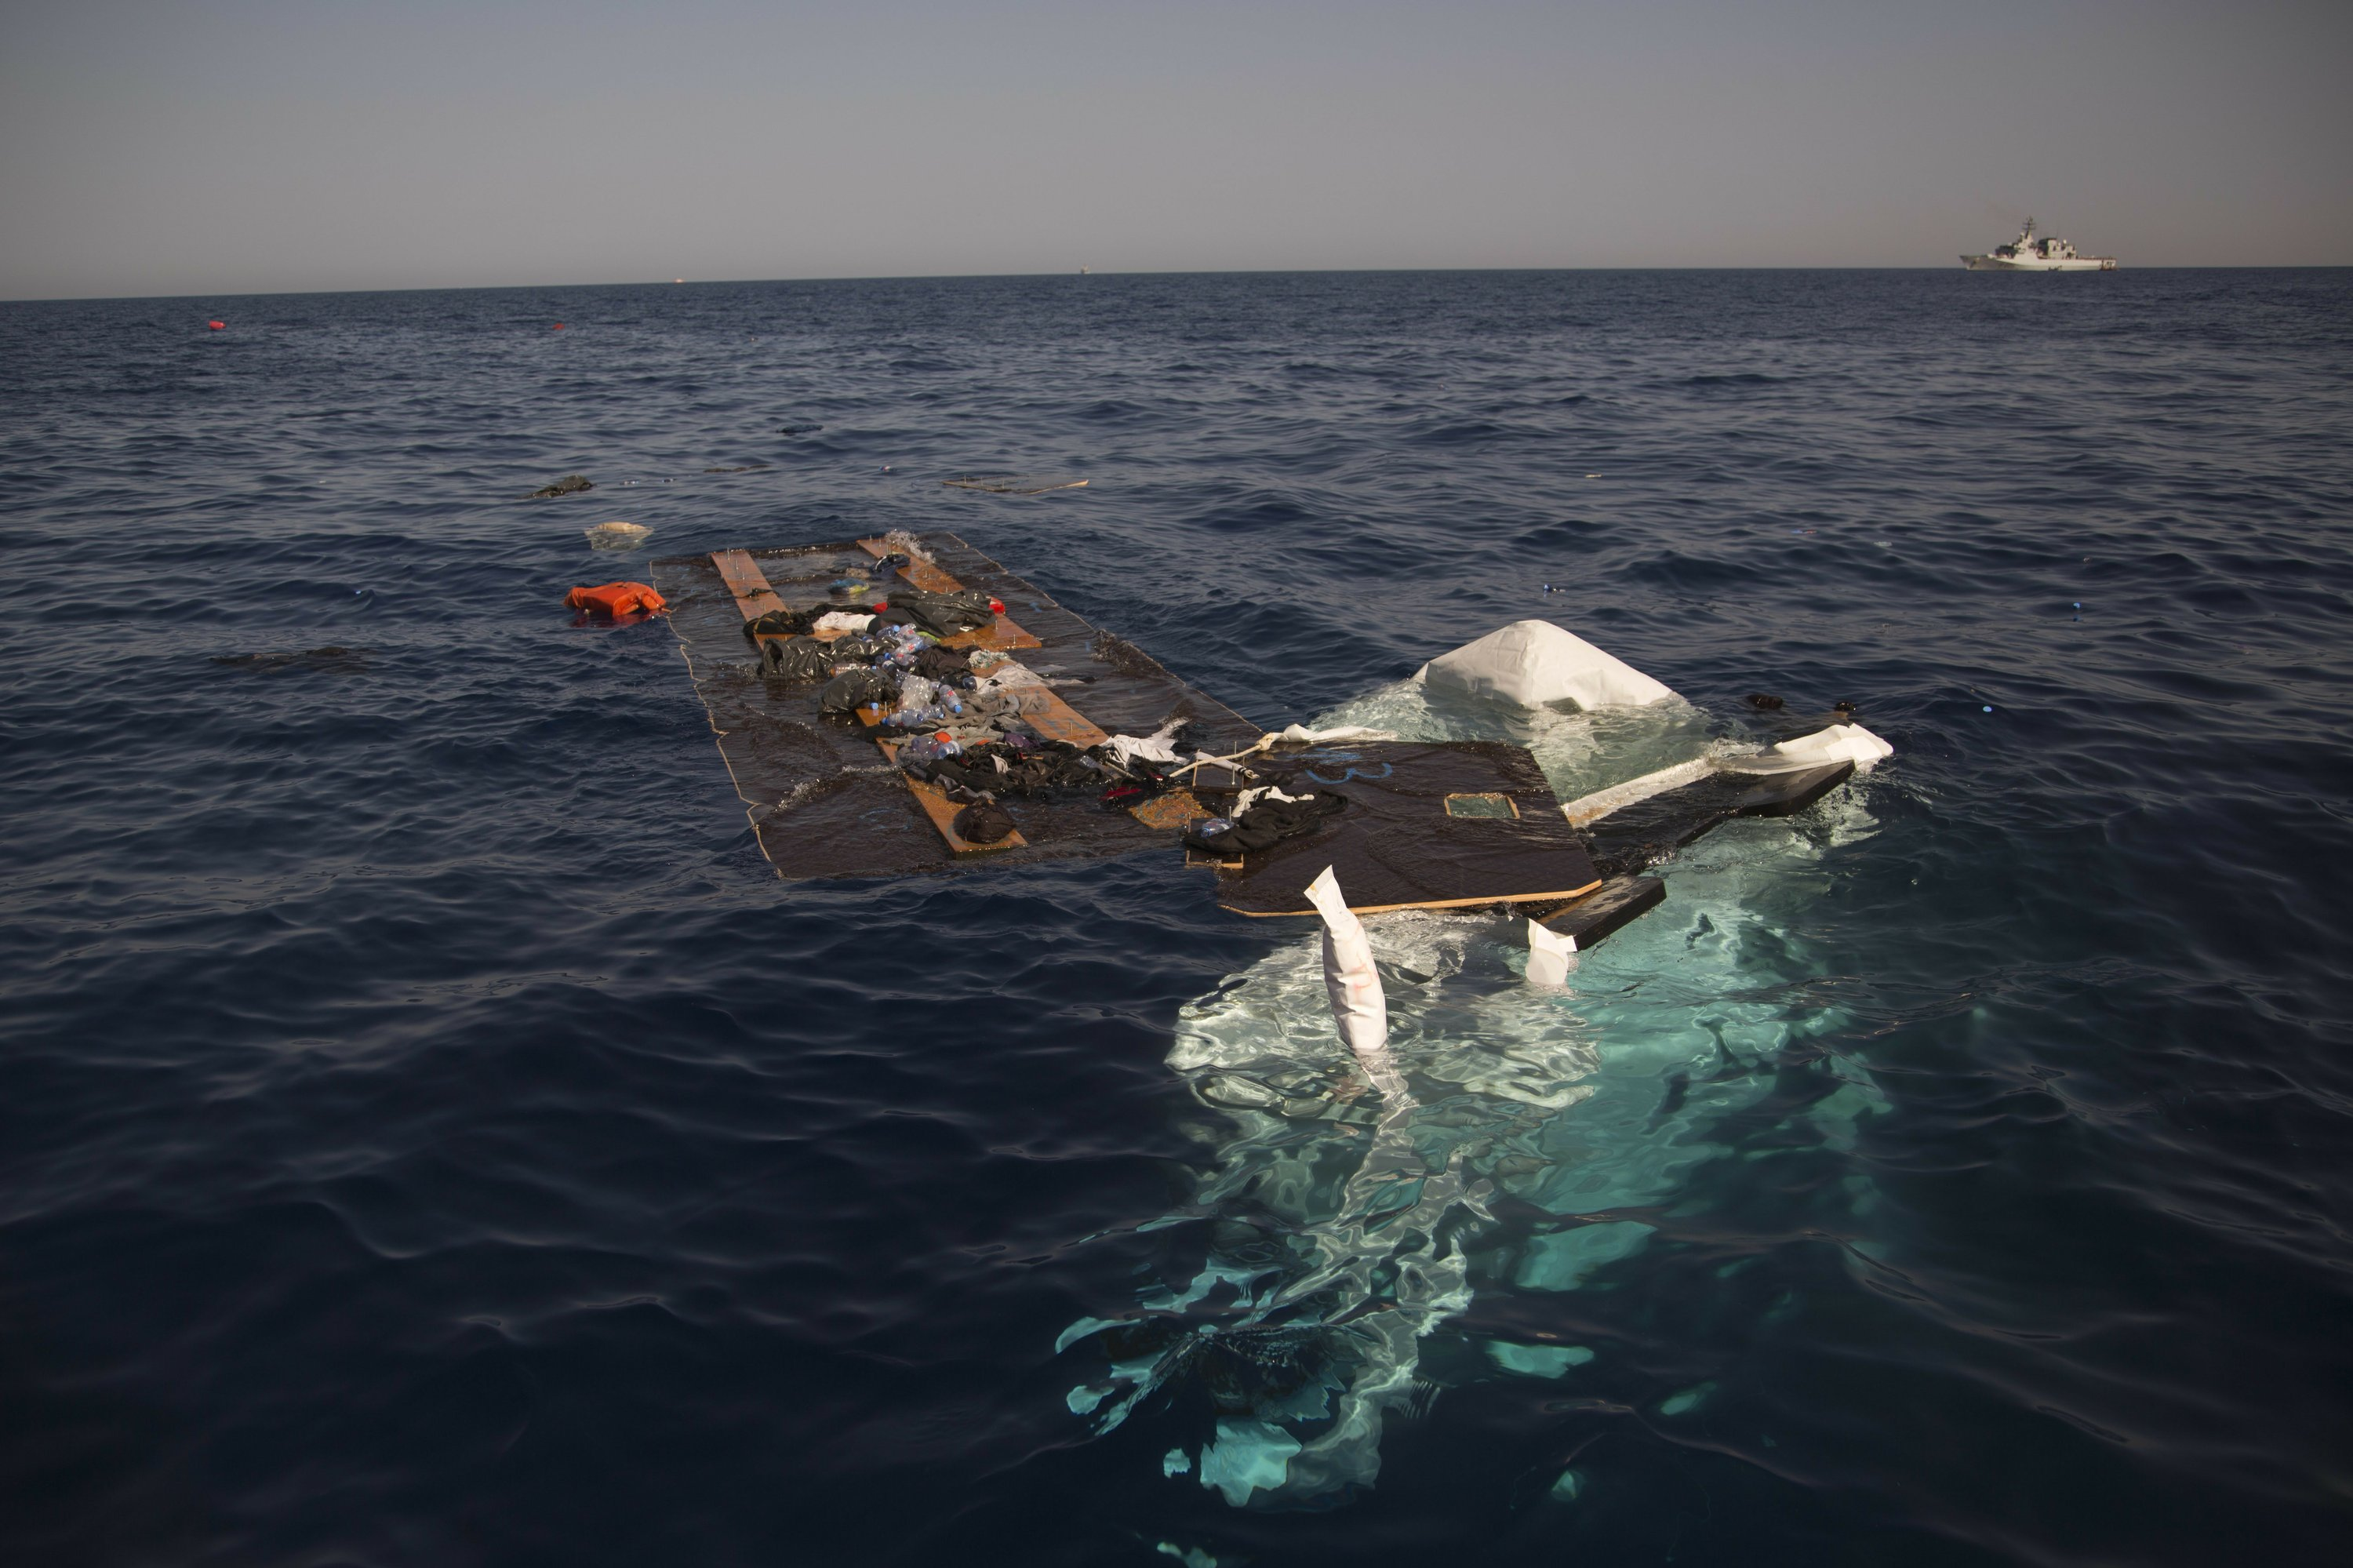 Survivors of Libyan shipwreck report 7 Syrians dead